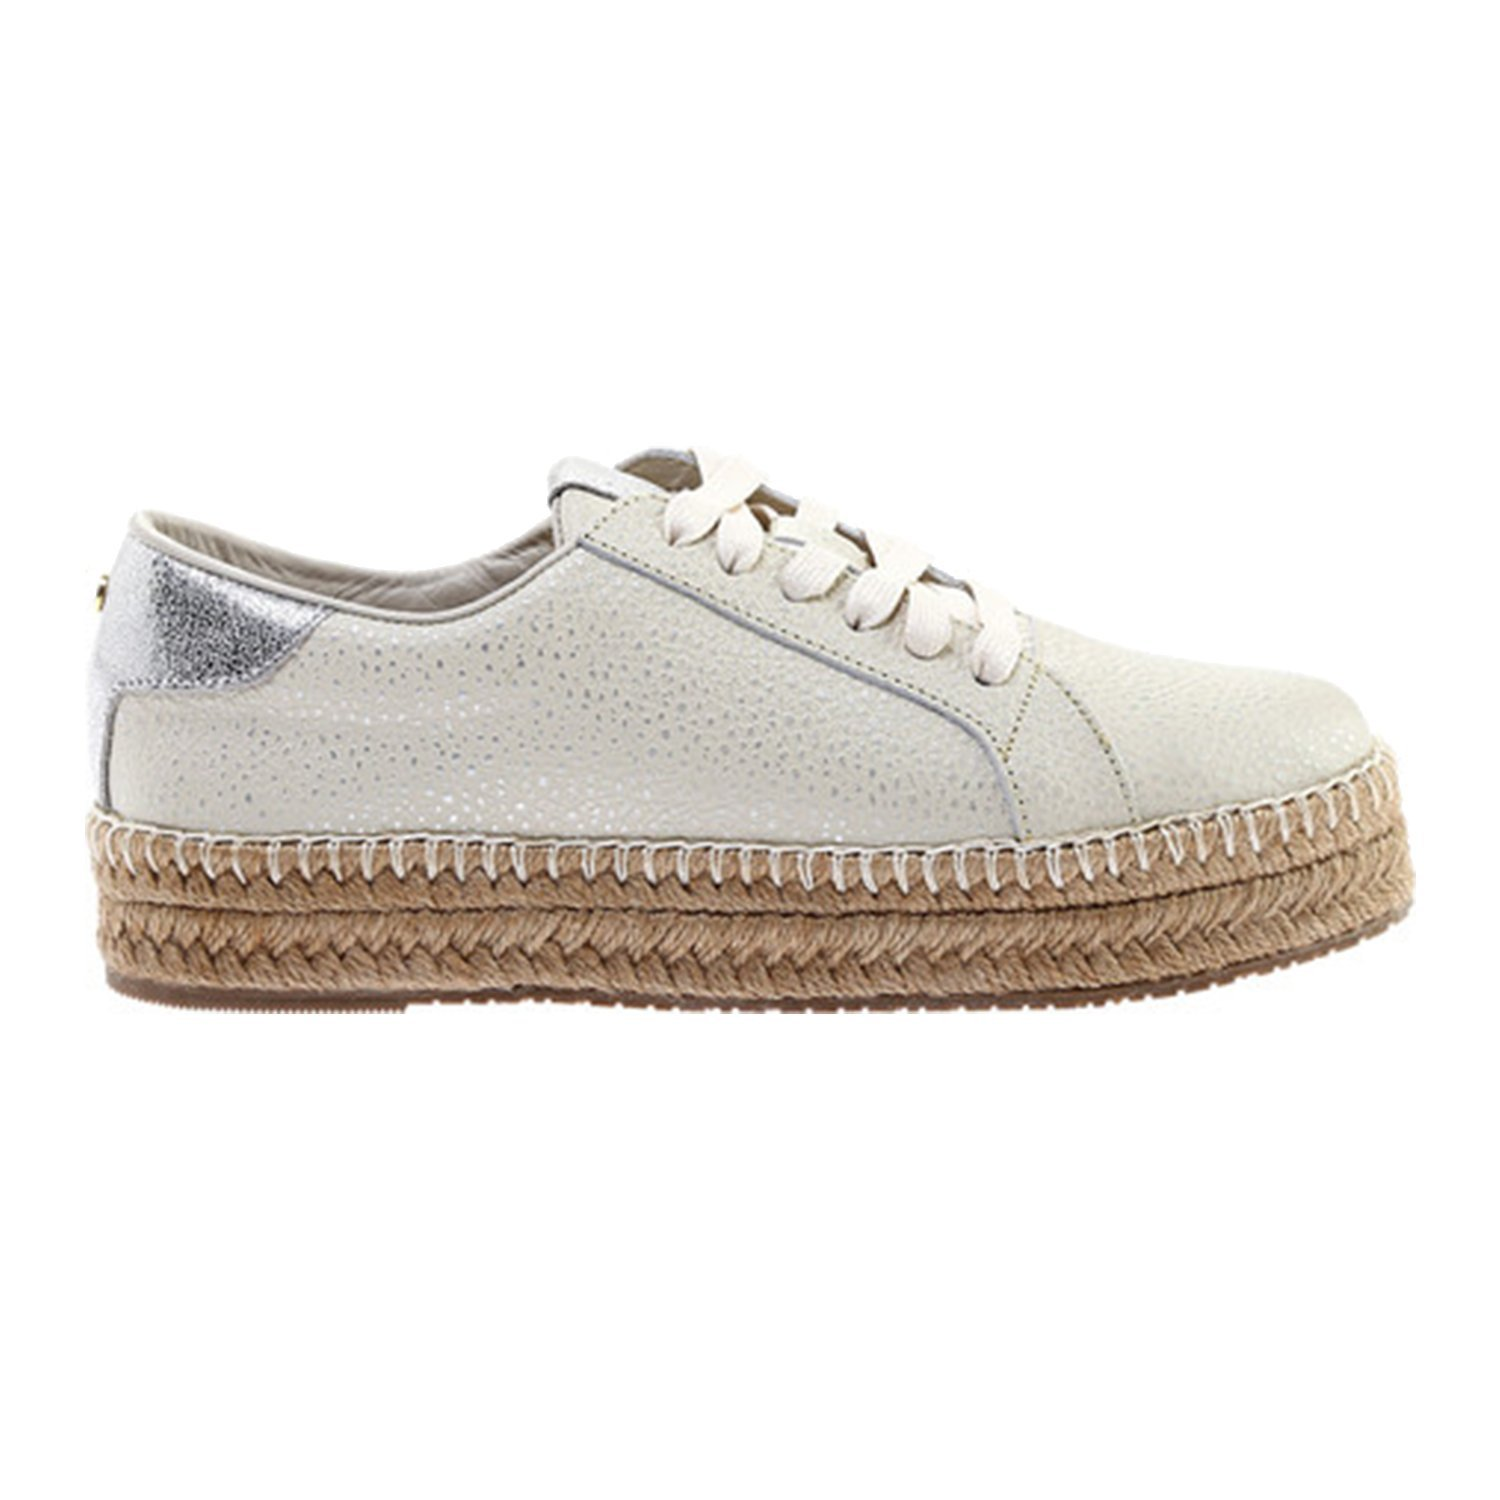 Kaanas Arizona Espadrille Sneaker | Muse Boutique Outlet – Muse Outlet